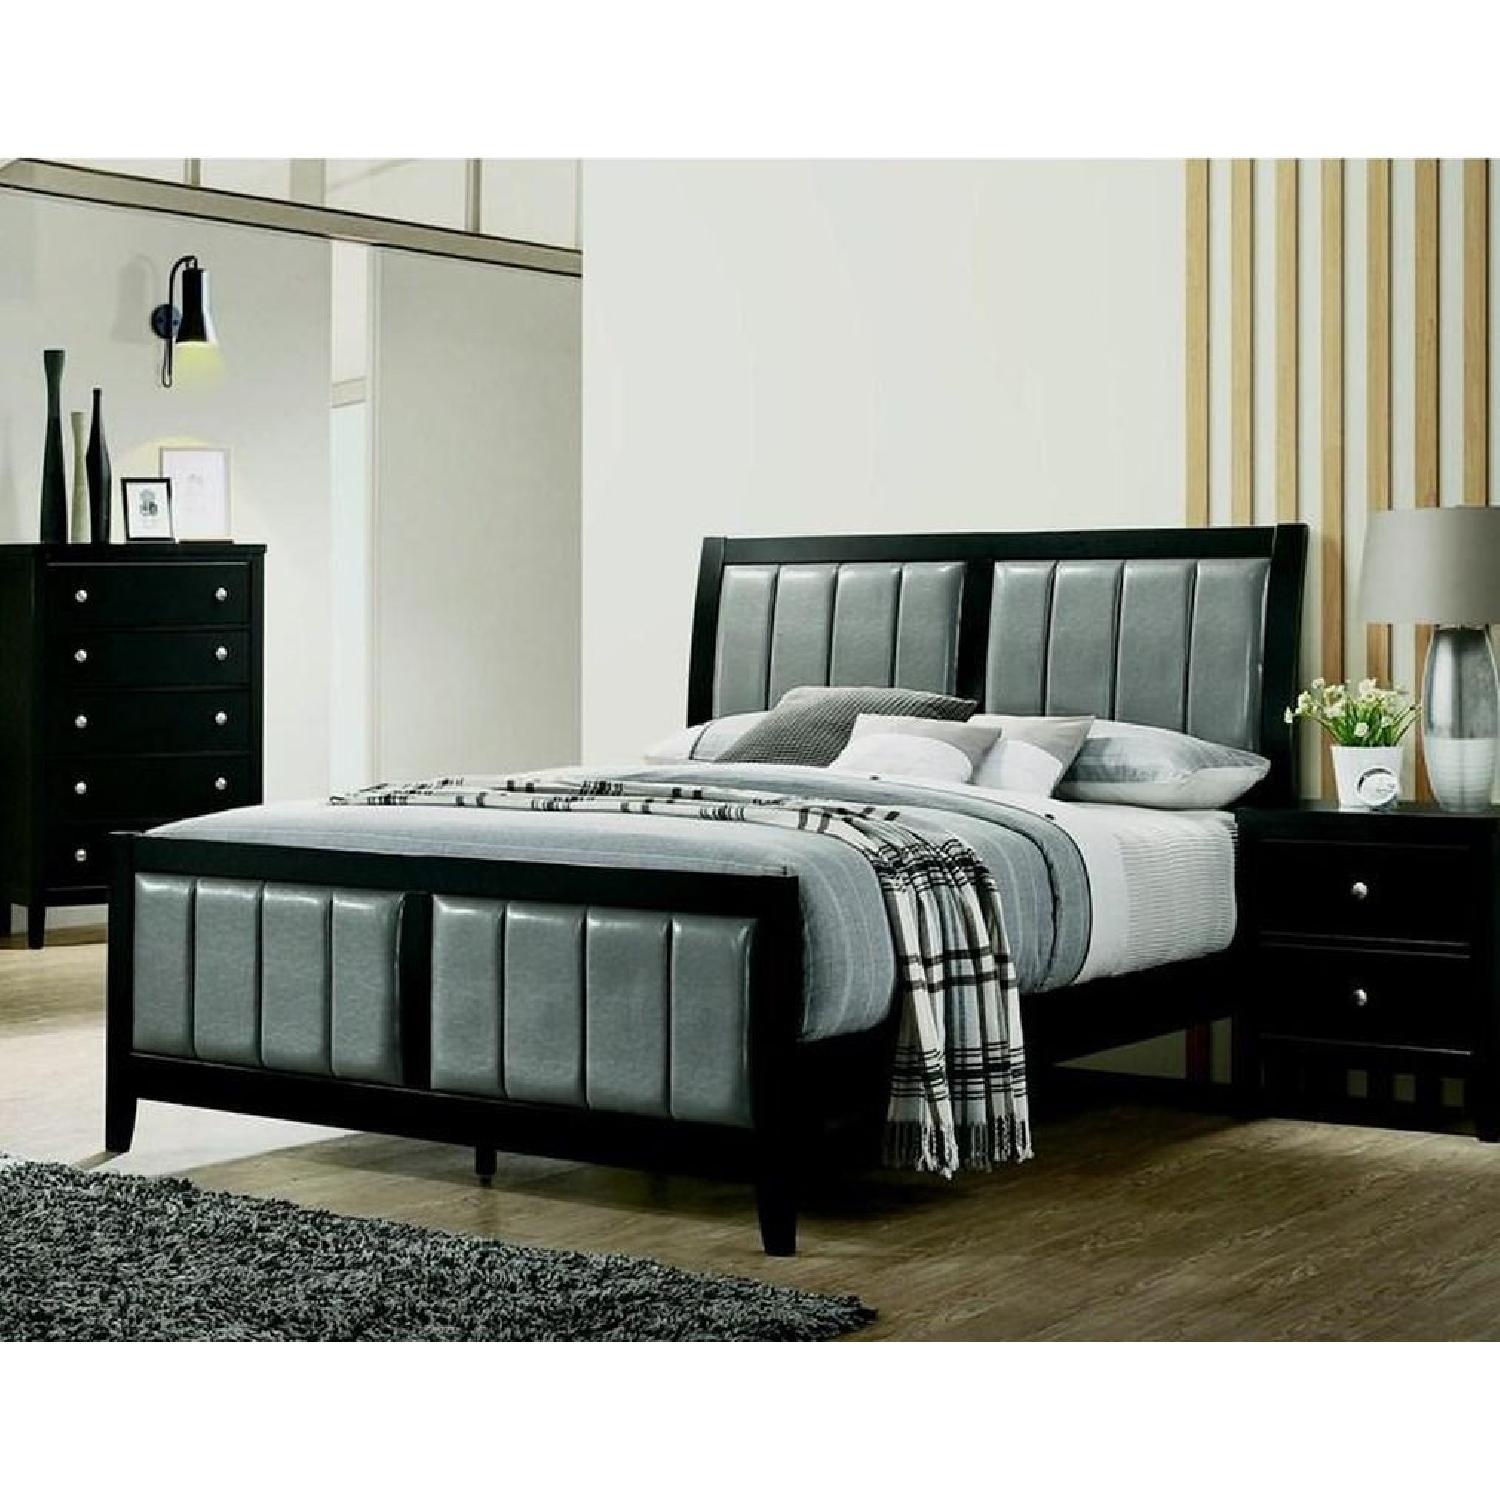 Queen Bed in Black Wood Frame w/ Grey Leatherette Headboard - image-3